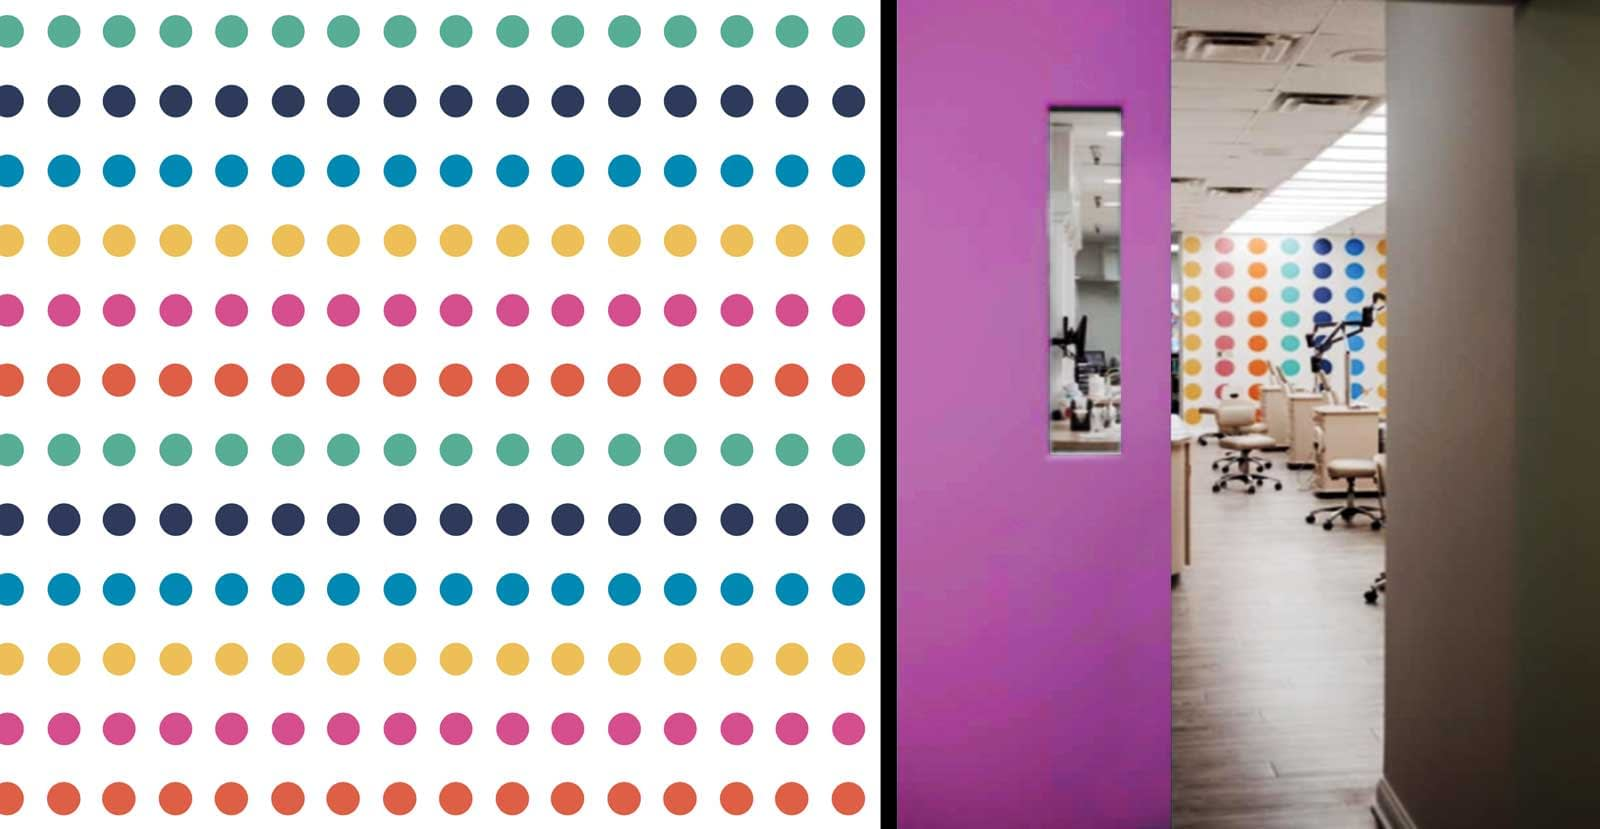 George Ortho dot pattern and interior design brand Kelly Gold Creative Design